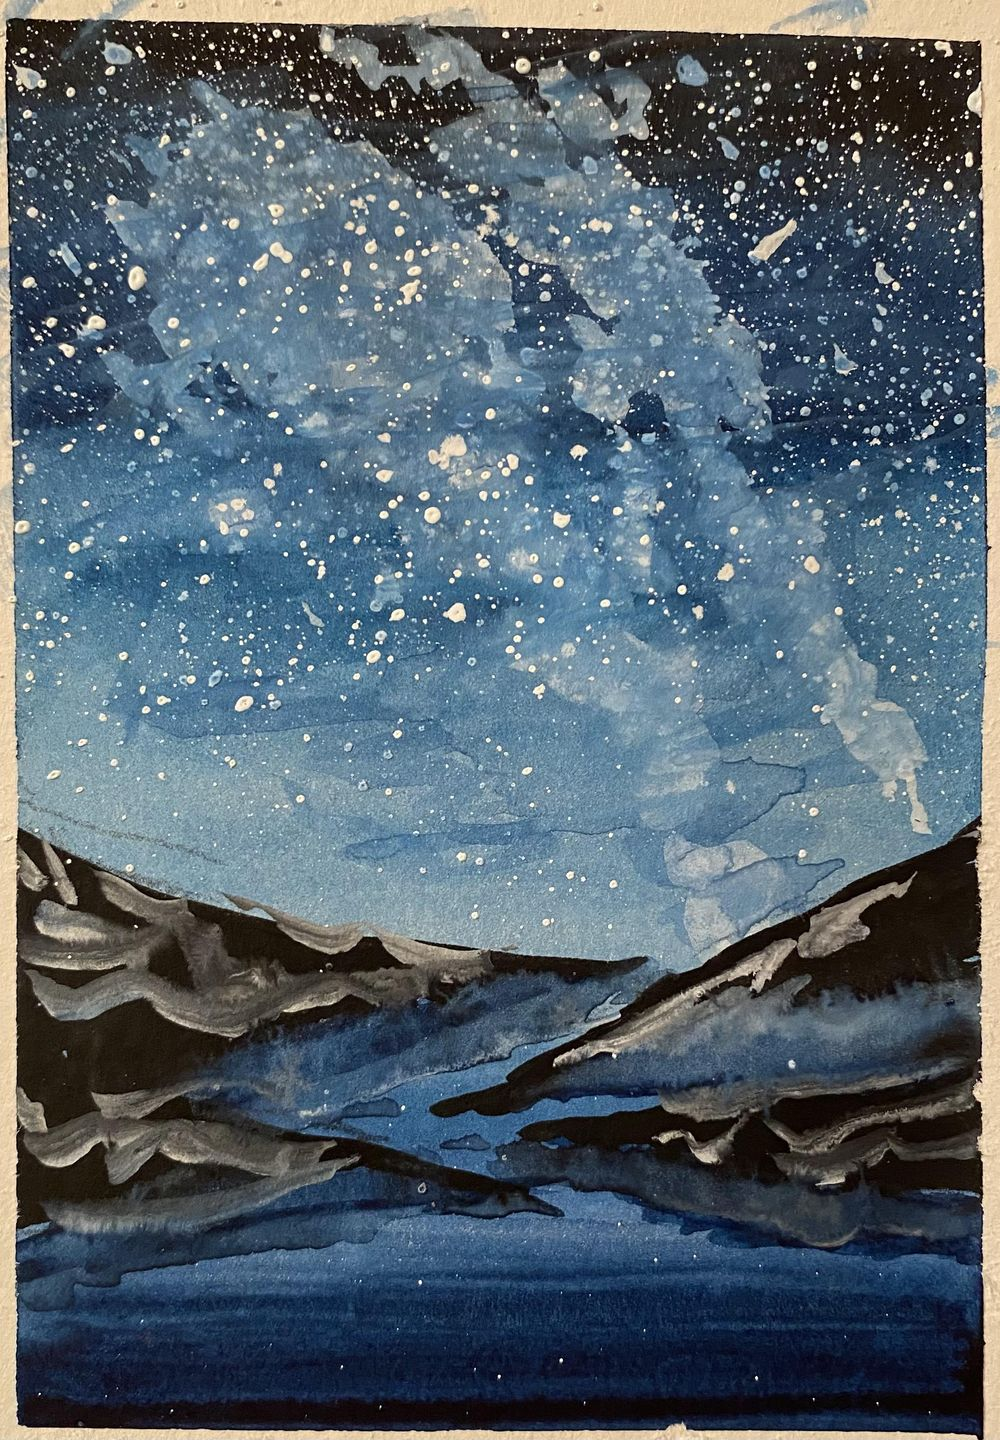 Dreamy Night Sky - image 1 - student project